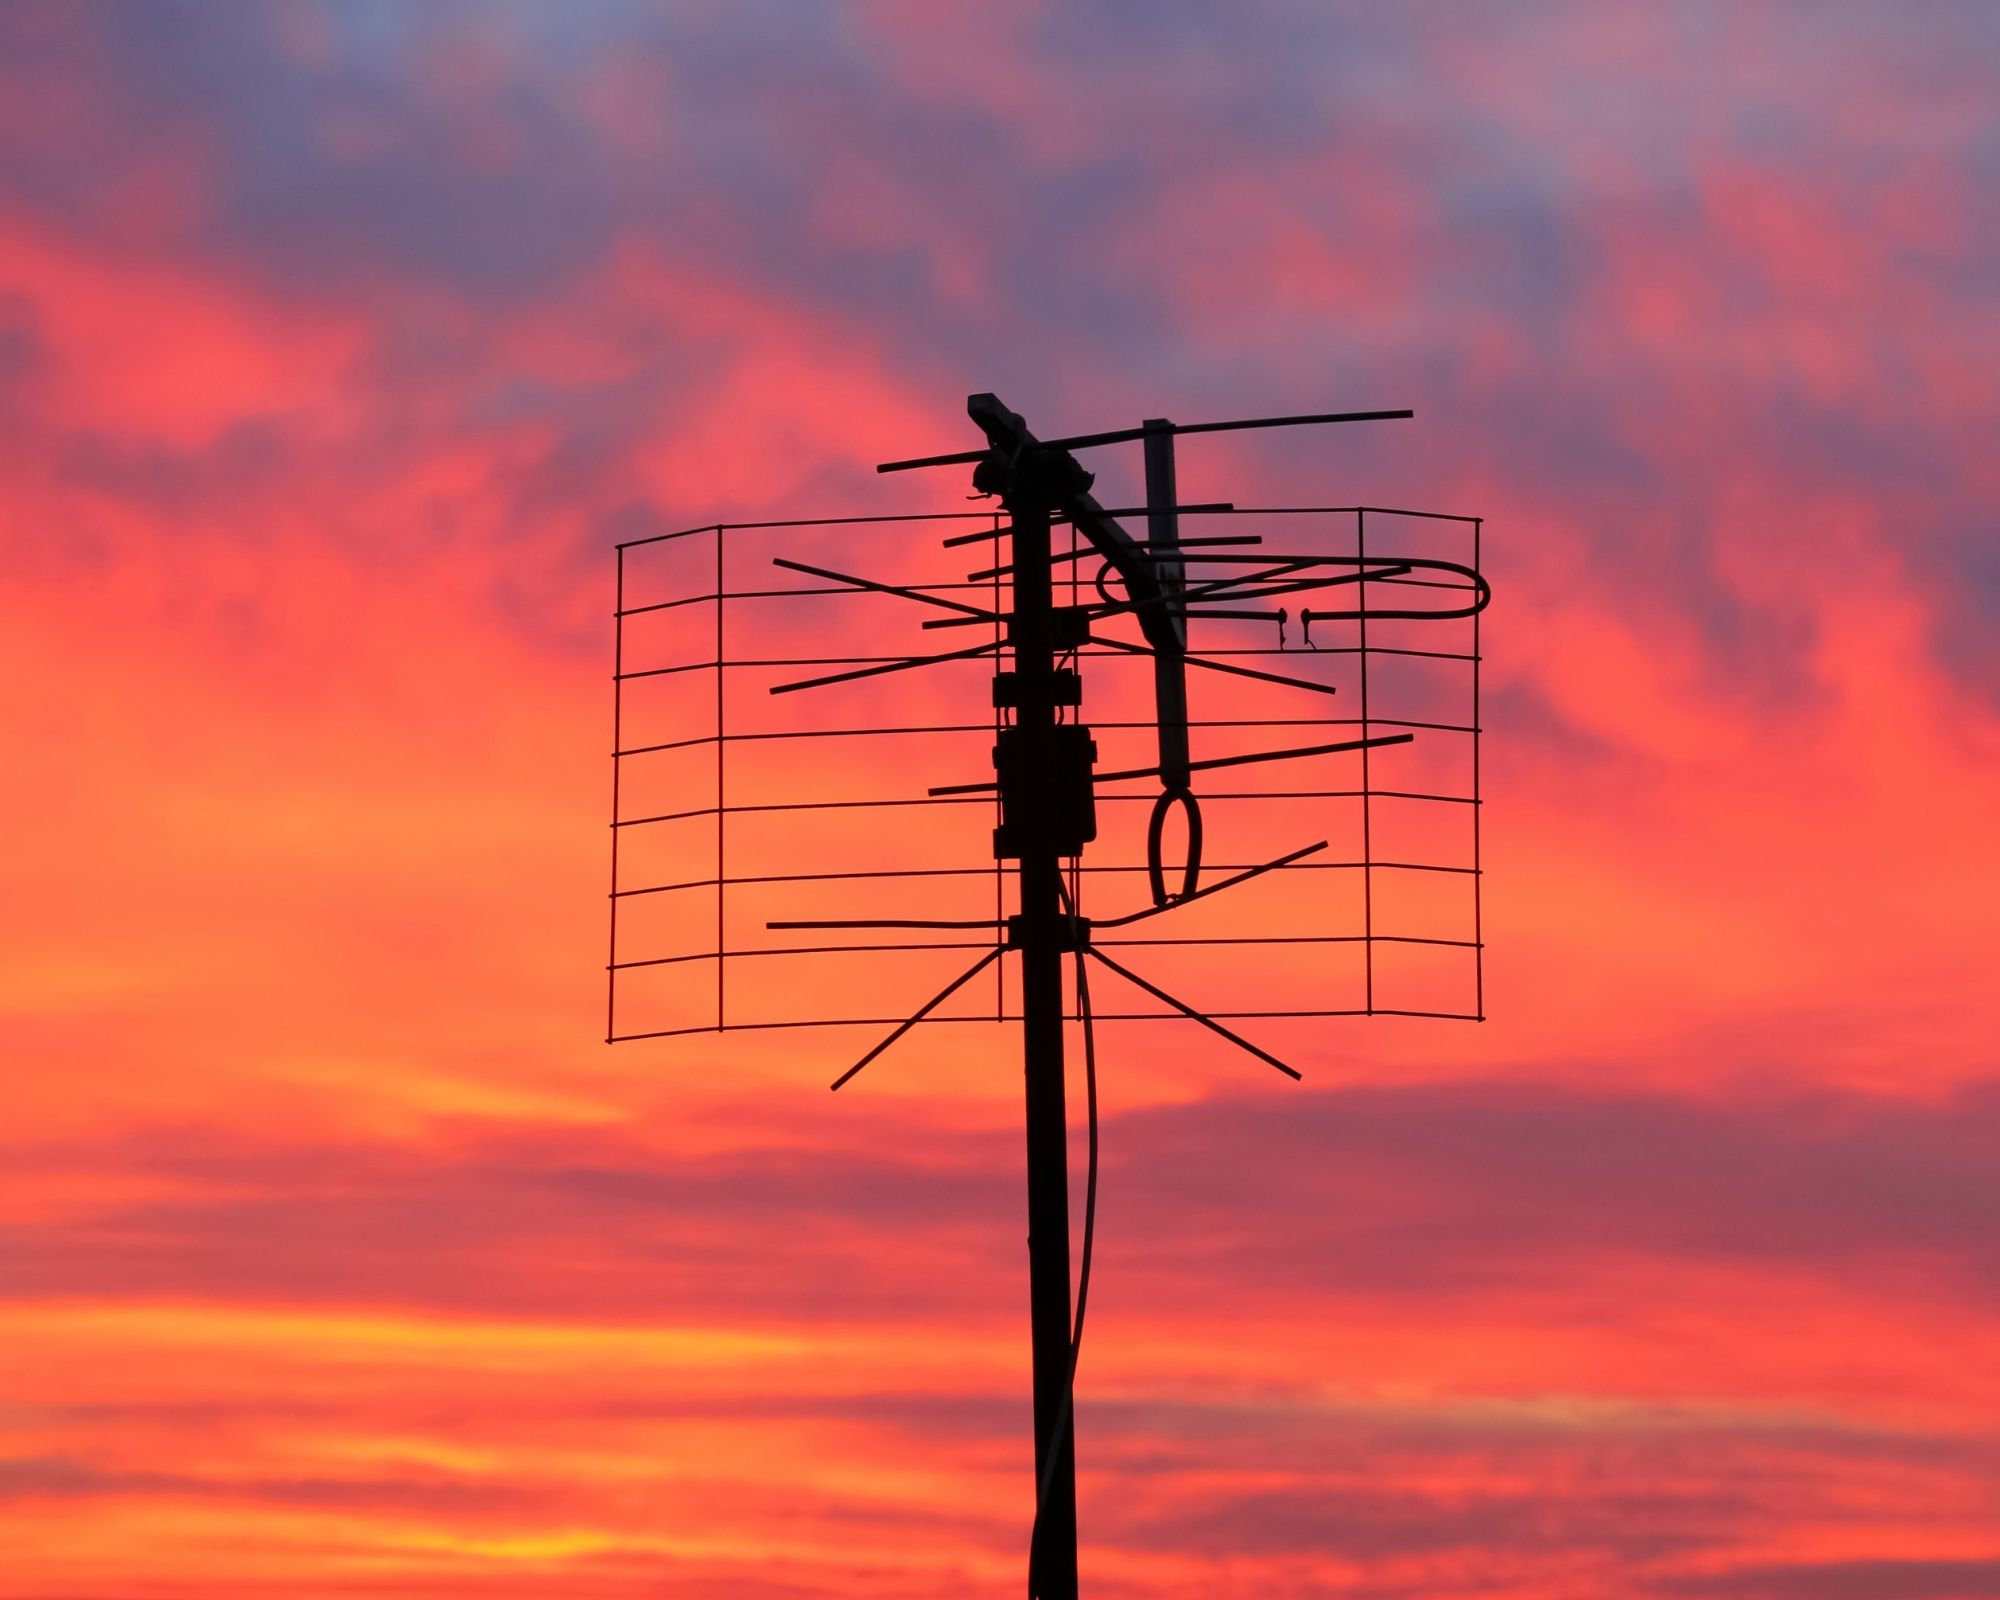 best outdoor tv aerial for freeview UK sunset